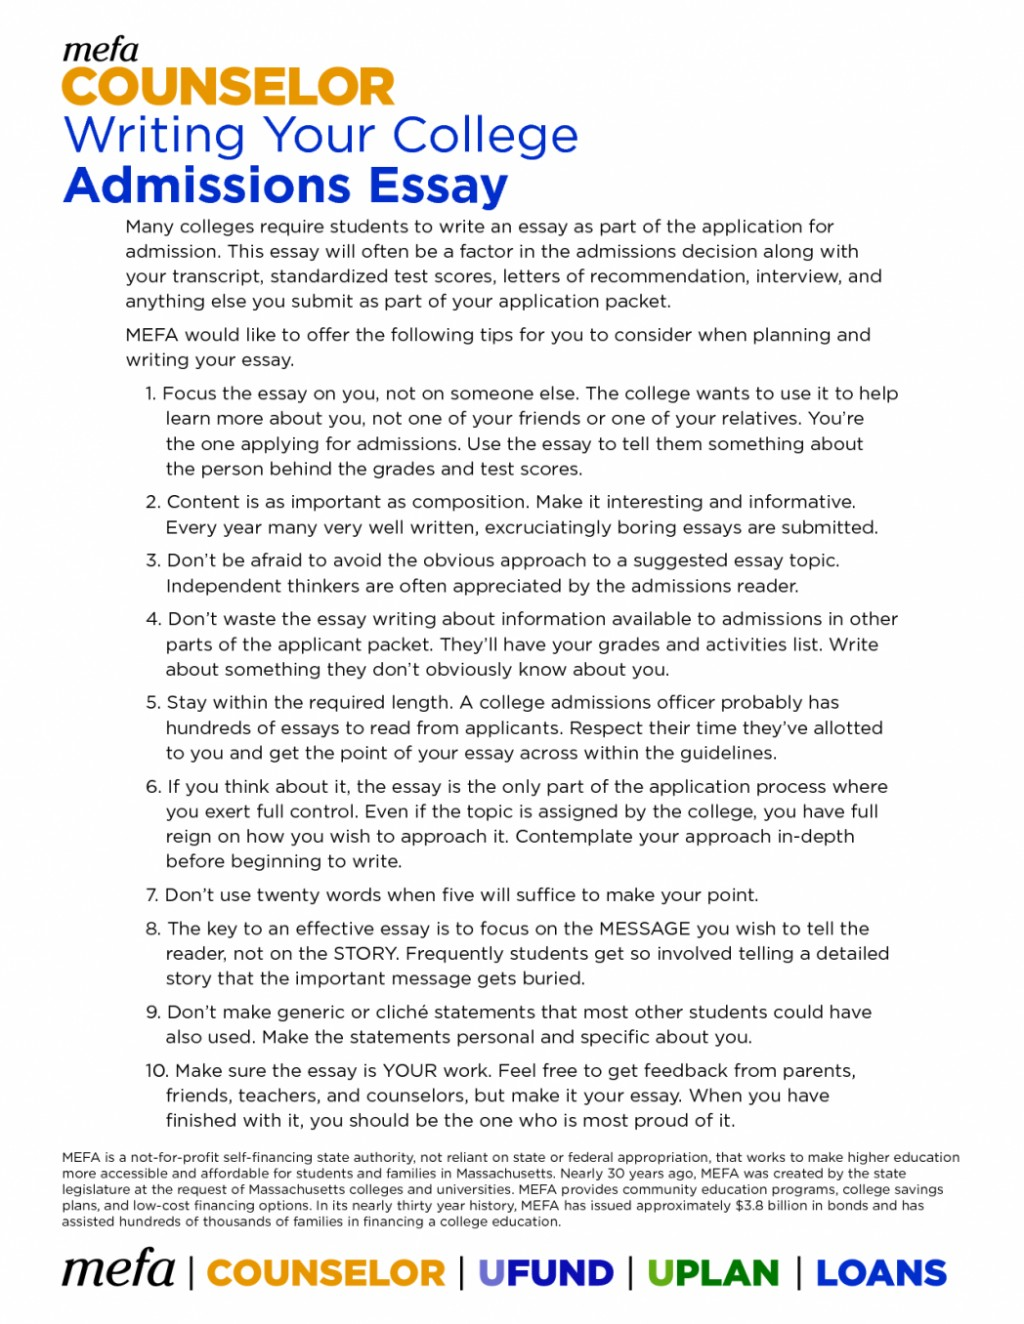 016 Essay Example College Writing Help High School How Many Paragraphs Should Application Wuaom Pages Words Long What About Formatted In Mla Format 1048x1356 Are An Unforgettable There Argumentative Needed Sat Large